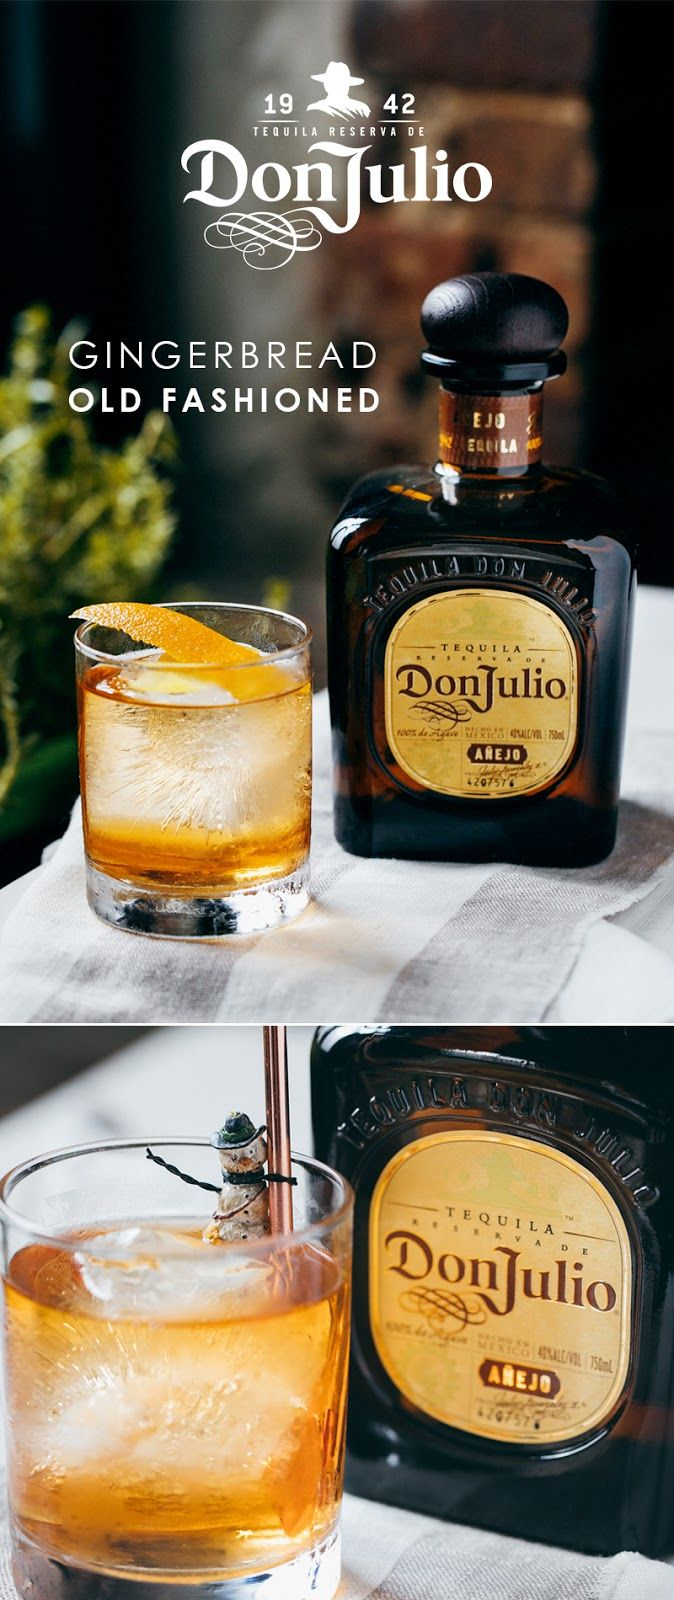 Sometimes, all you need is tequila, gingerbread and some snowmen to bring the holiday spirit to your house party. Combine 1 ½ OZ of Tequila Don Julio Añejo, ¼ OZ gingerbread spice infused agave, 2 dashes Aromatic bitters and 1 dash Aromatic orange bitters into a mixing glass with ice. Stir well. Strain contents into a rocks glass over fresh ice. Garnish with saffron threads. Garnish with lemon zest.